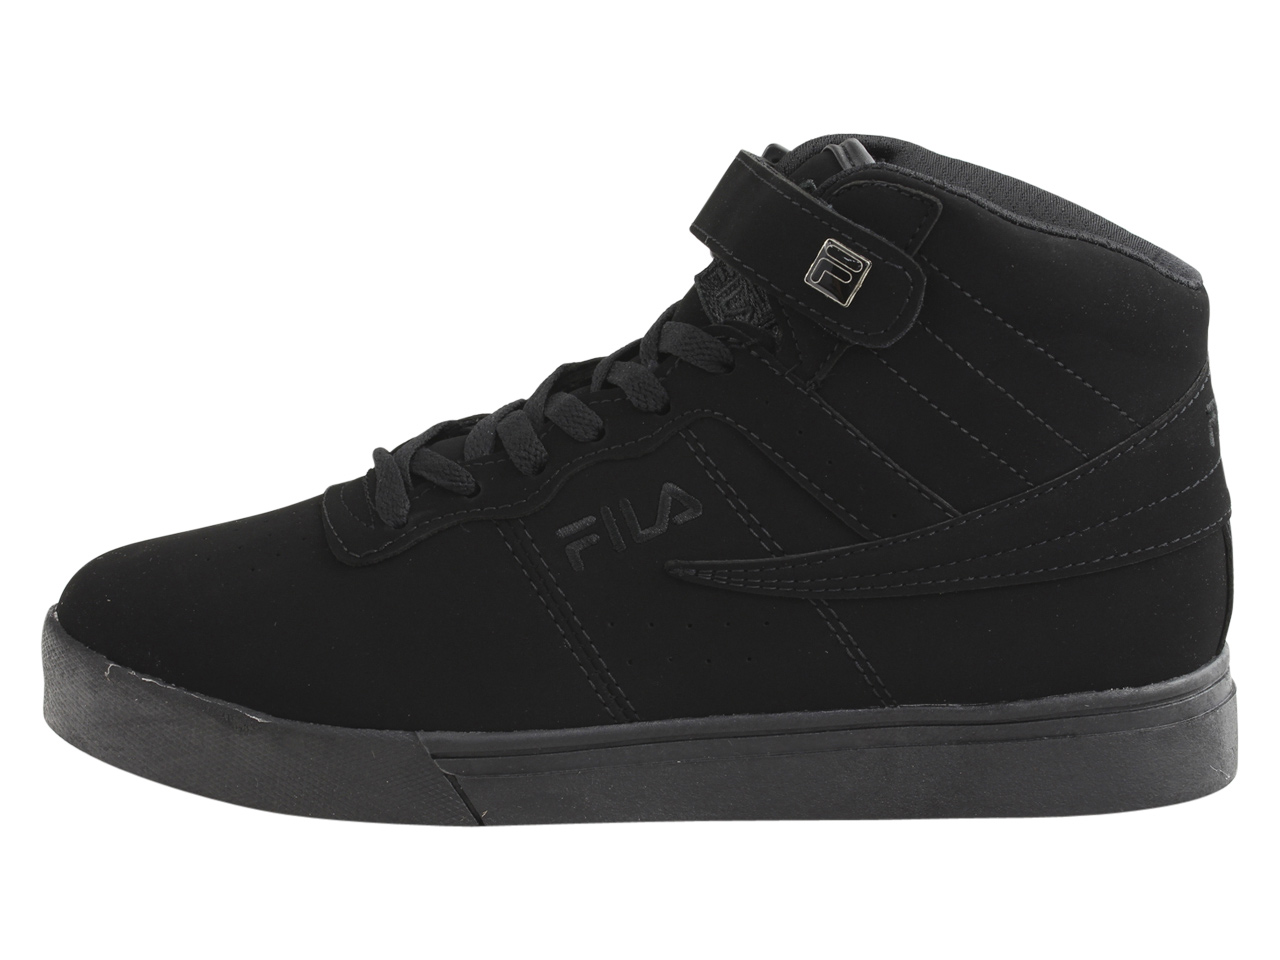 Fila-Men-039-s-Vulc-13-Mid-Plus-Sneakers-Shoes thumbnail 10